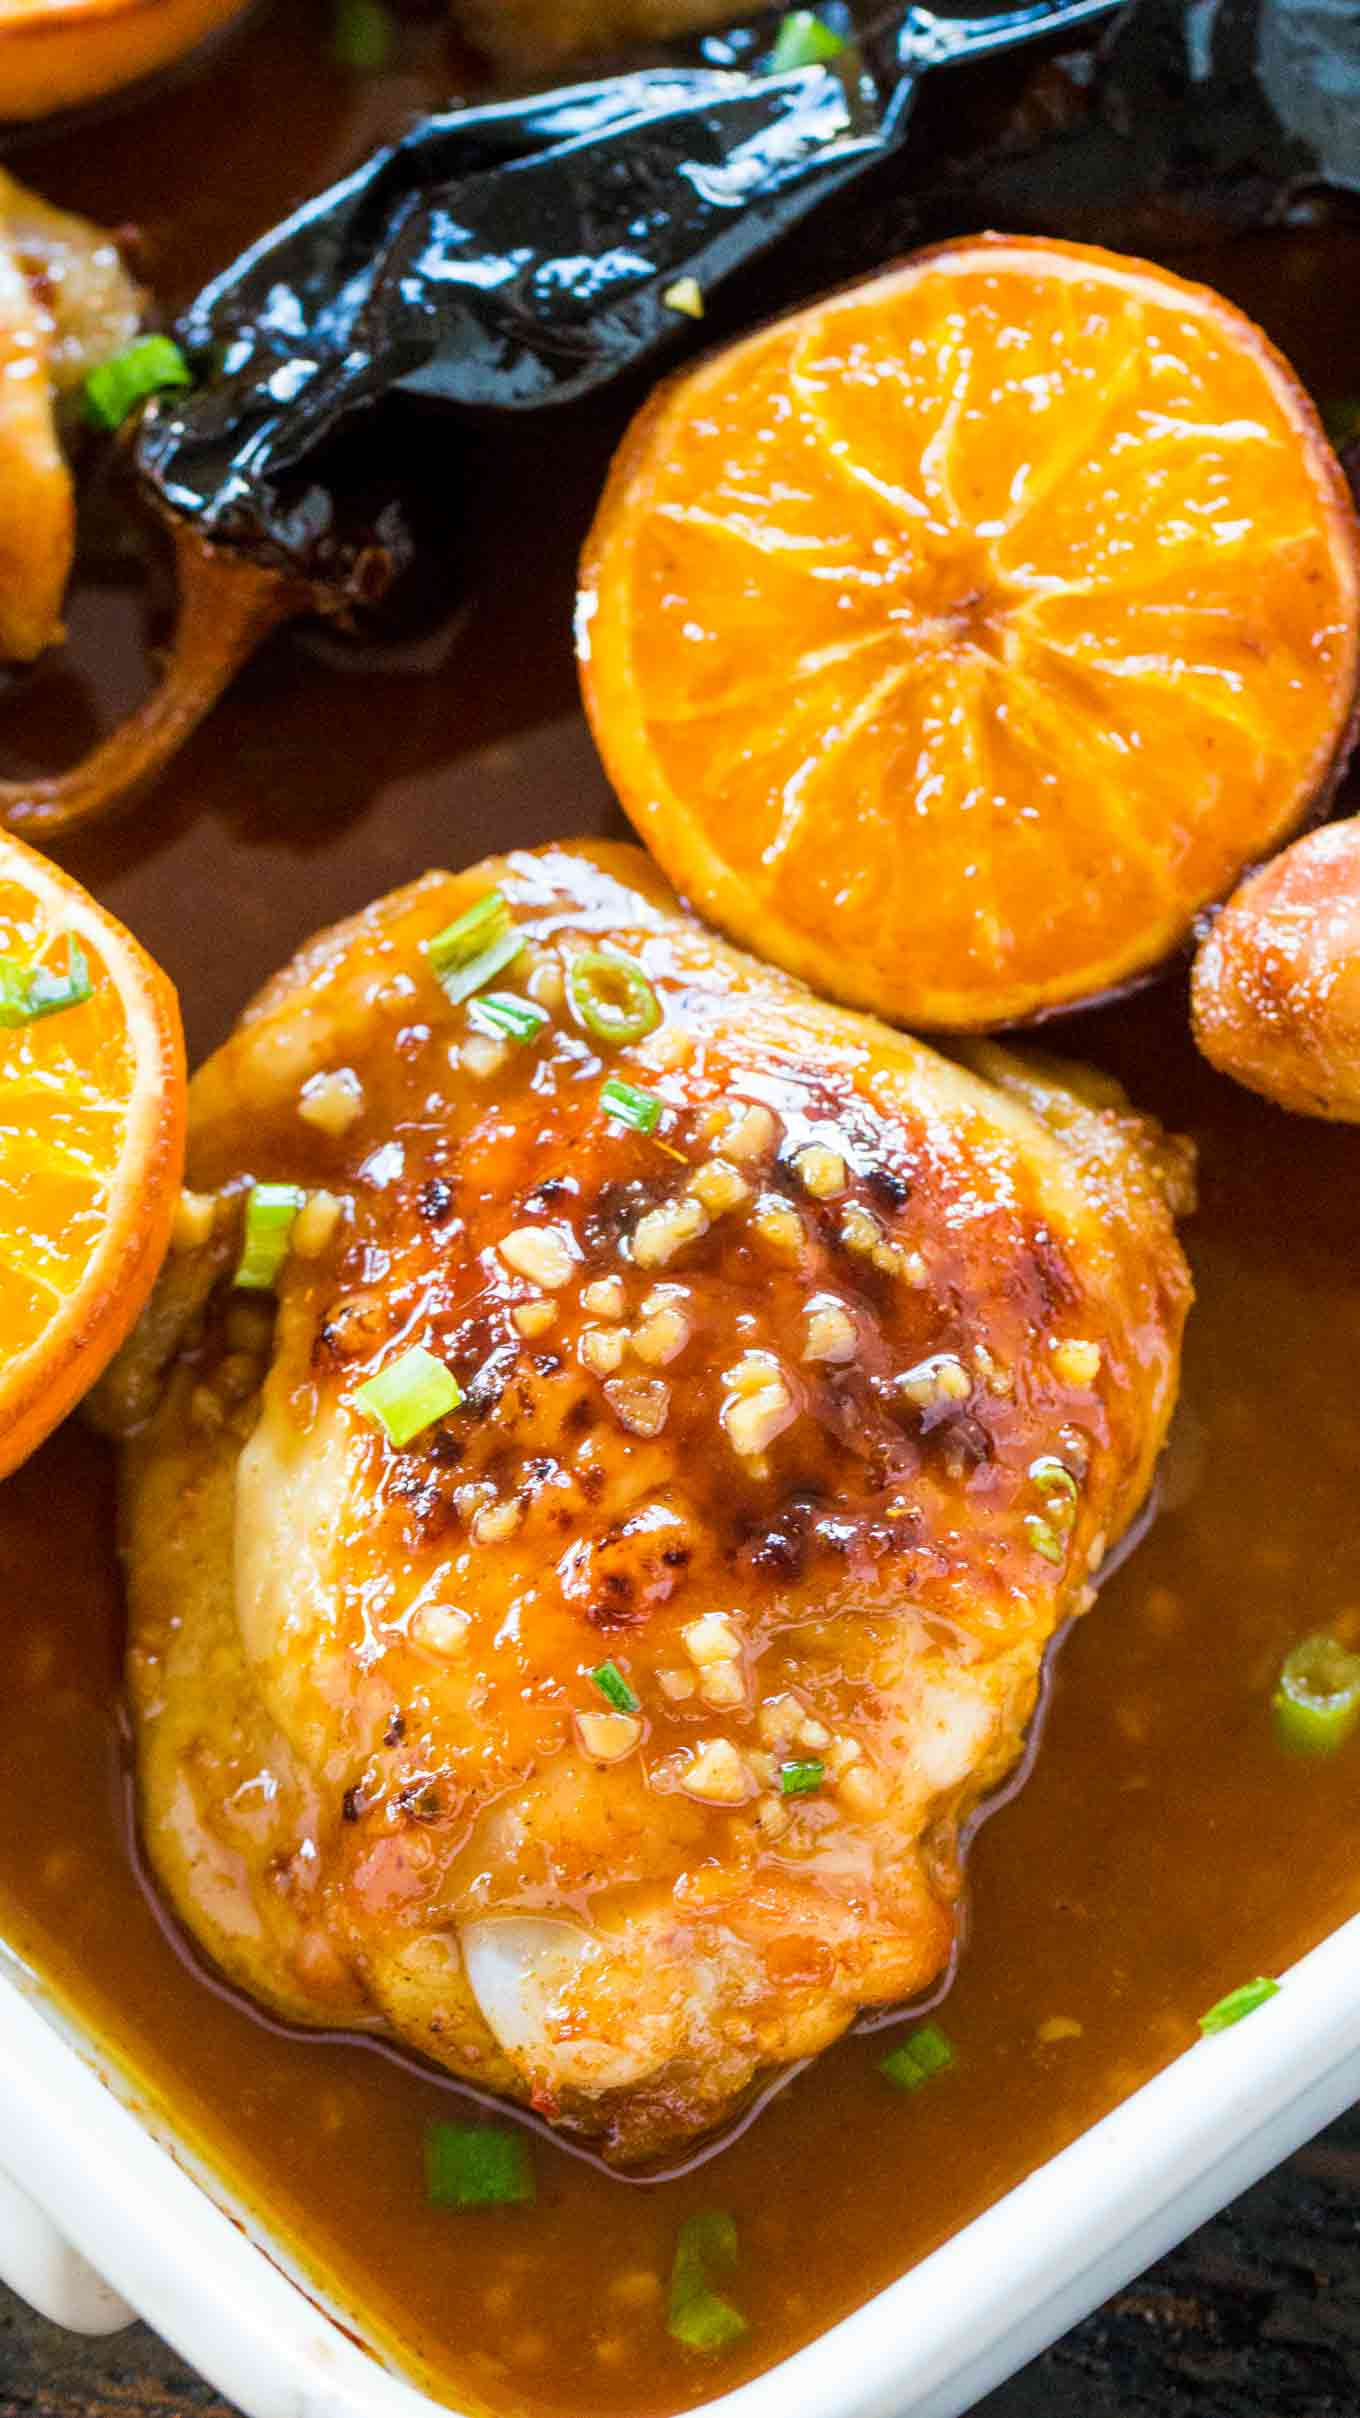 Chipotle Orange Chicken is sweet, spicy, crispy on the outside and tender on the inside. Also, easily made in one pan in just 30 minutes.